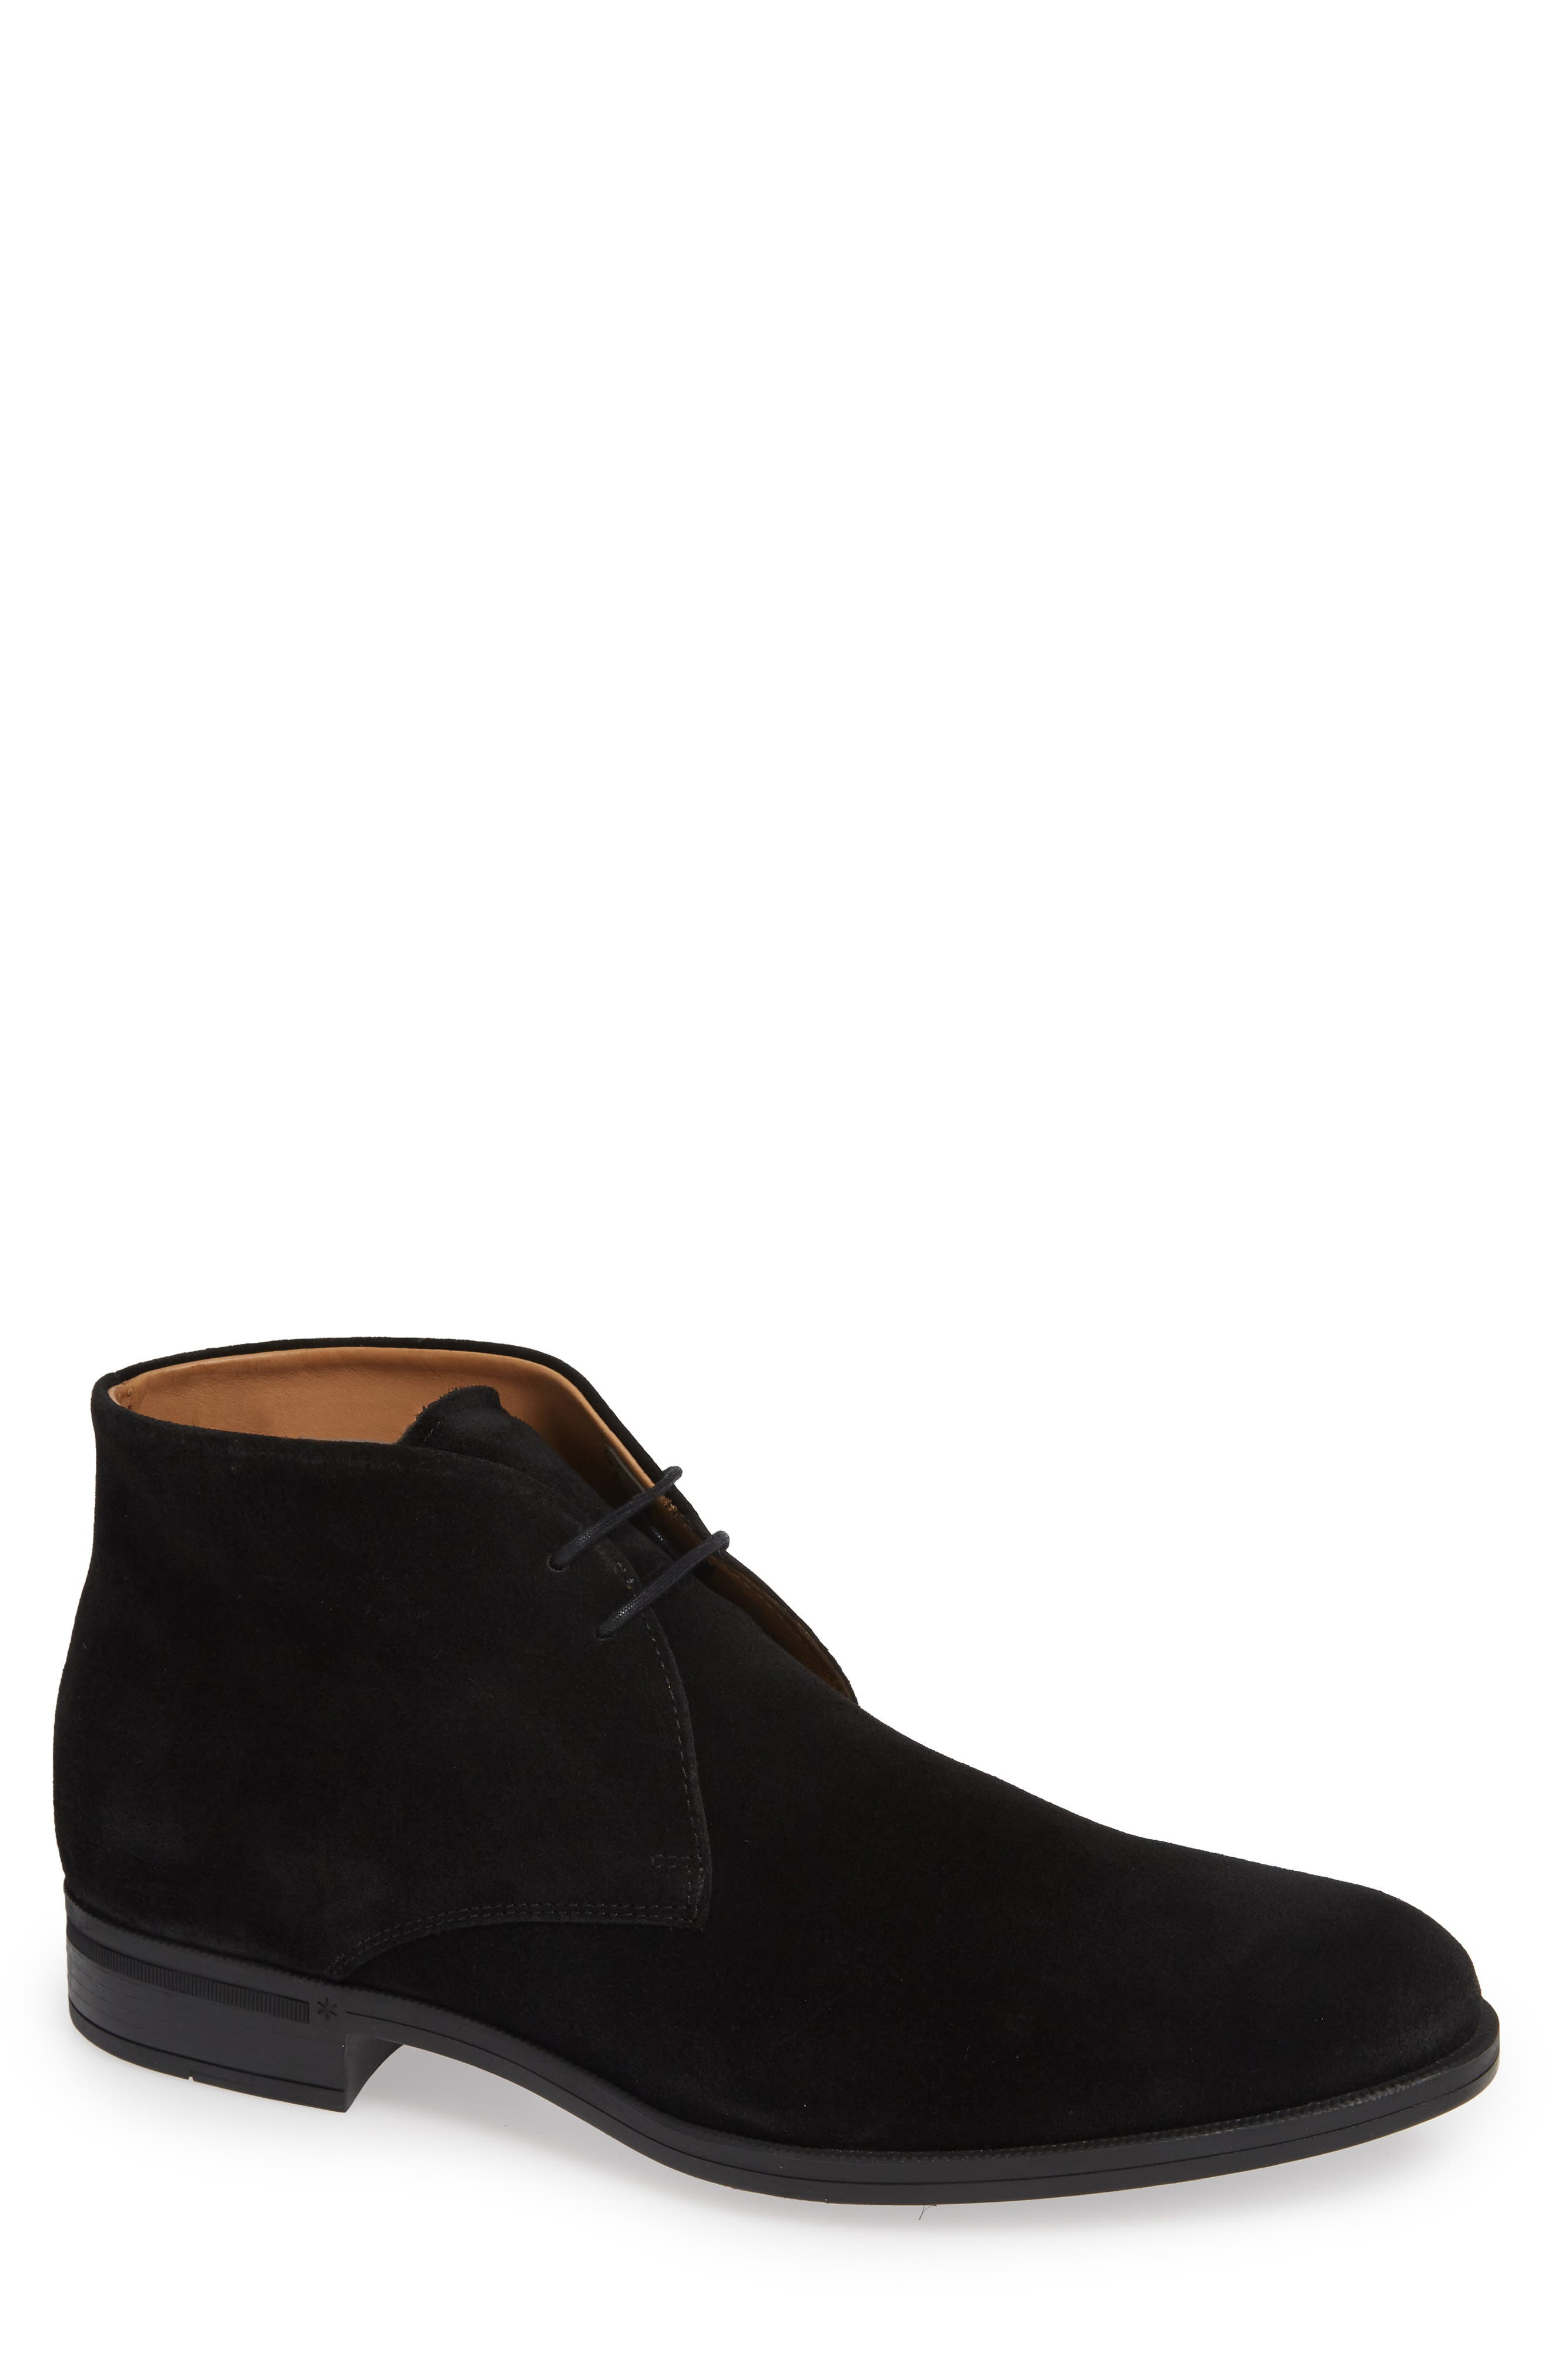 Iden Chukka Boot,                         Main,                         color, BLACK SUEDE